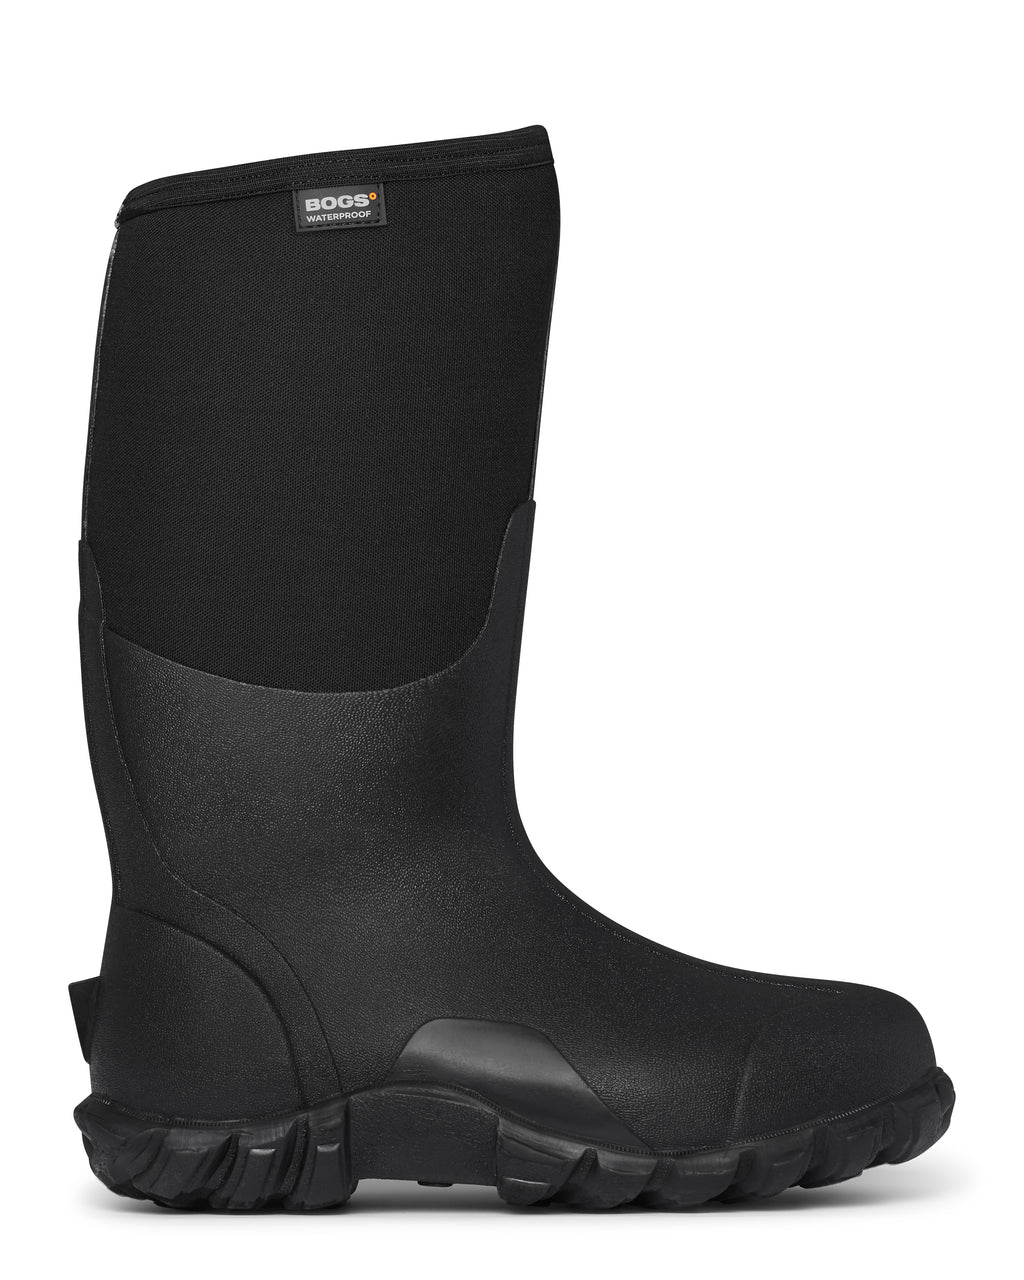 BOGS Men's Classic High Boot. 100% Waterproof Boots.